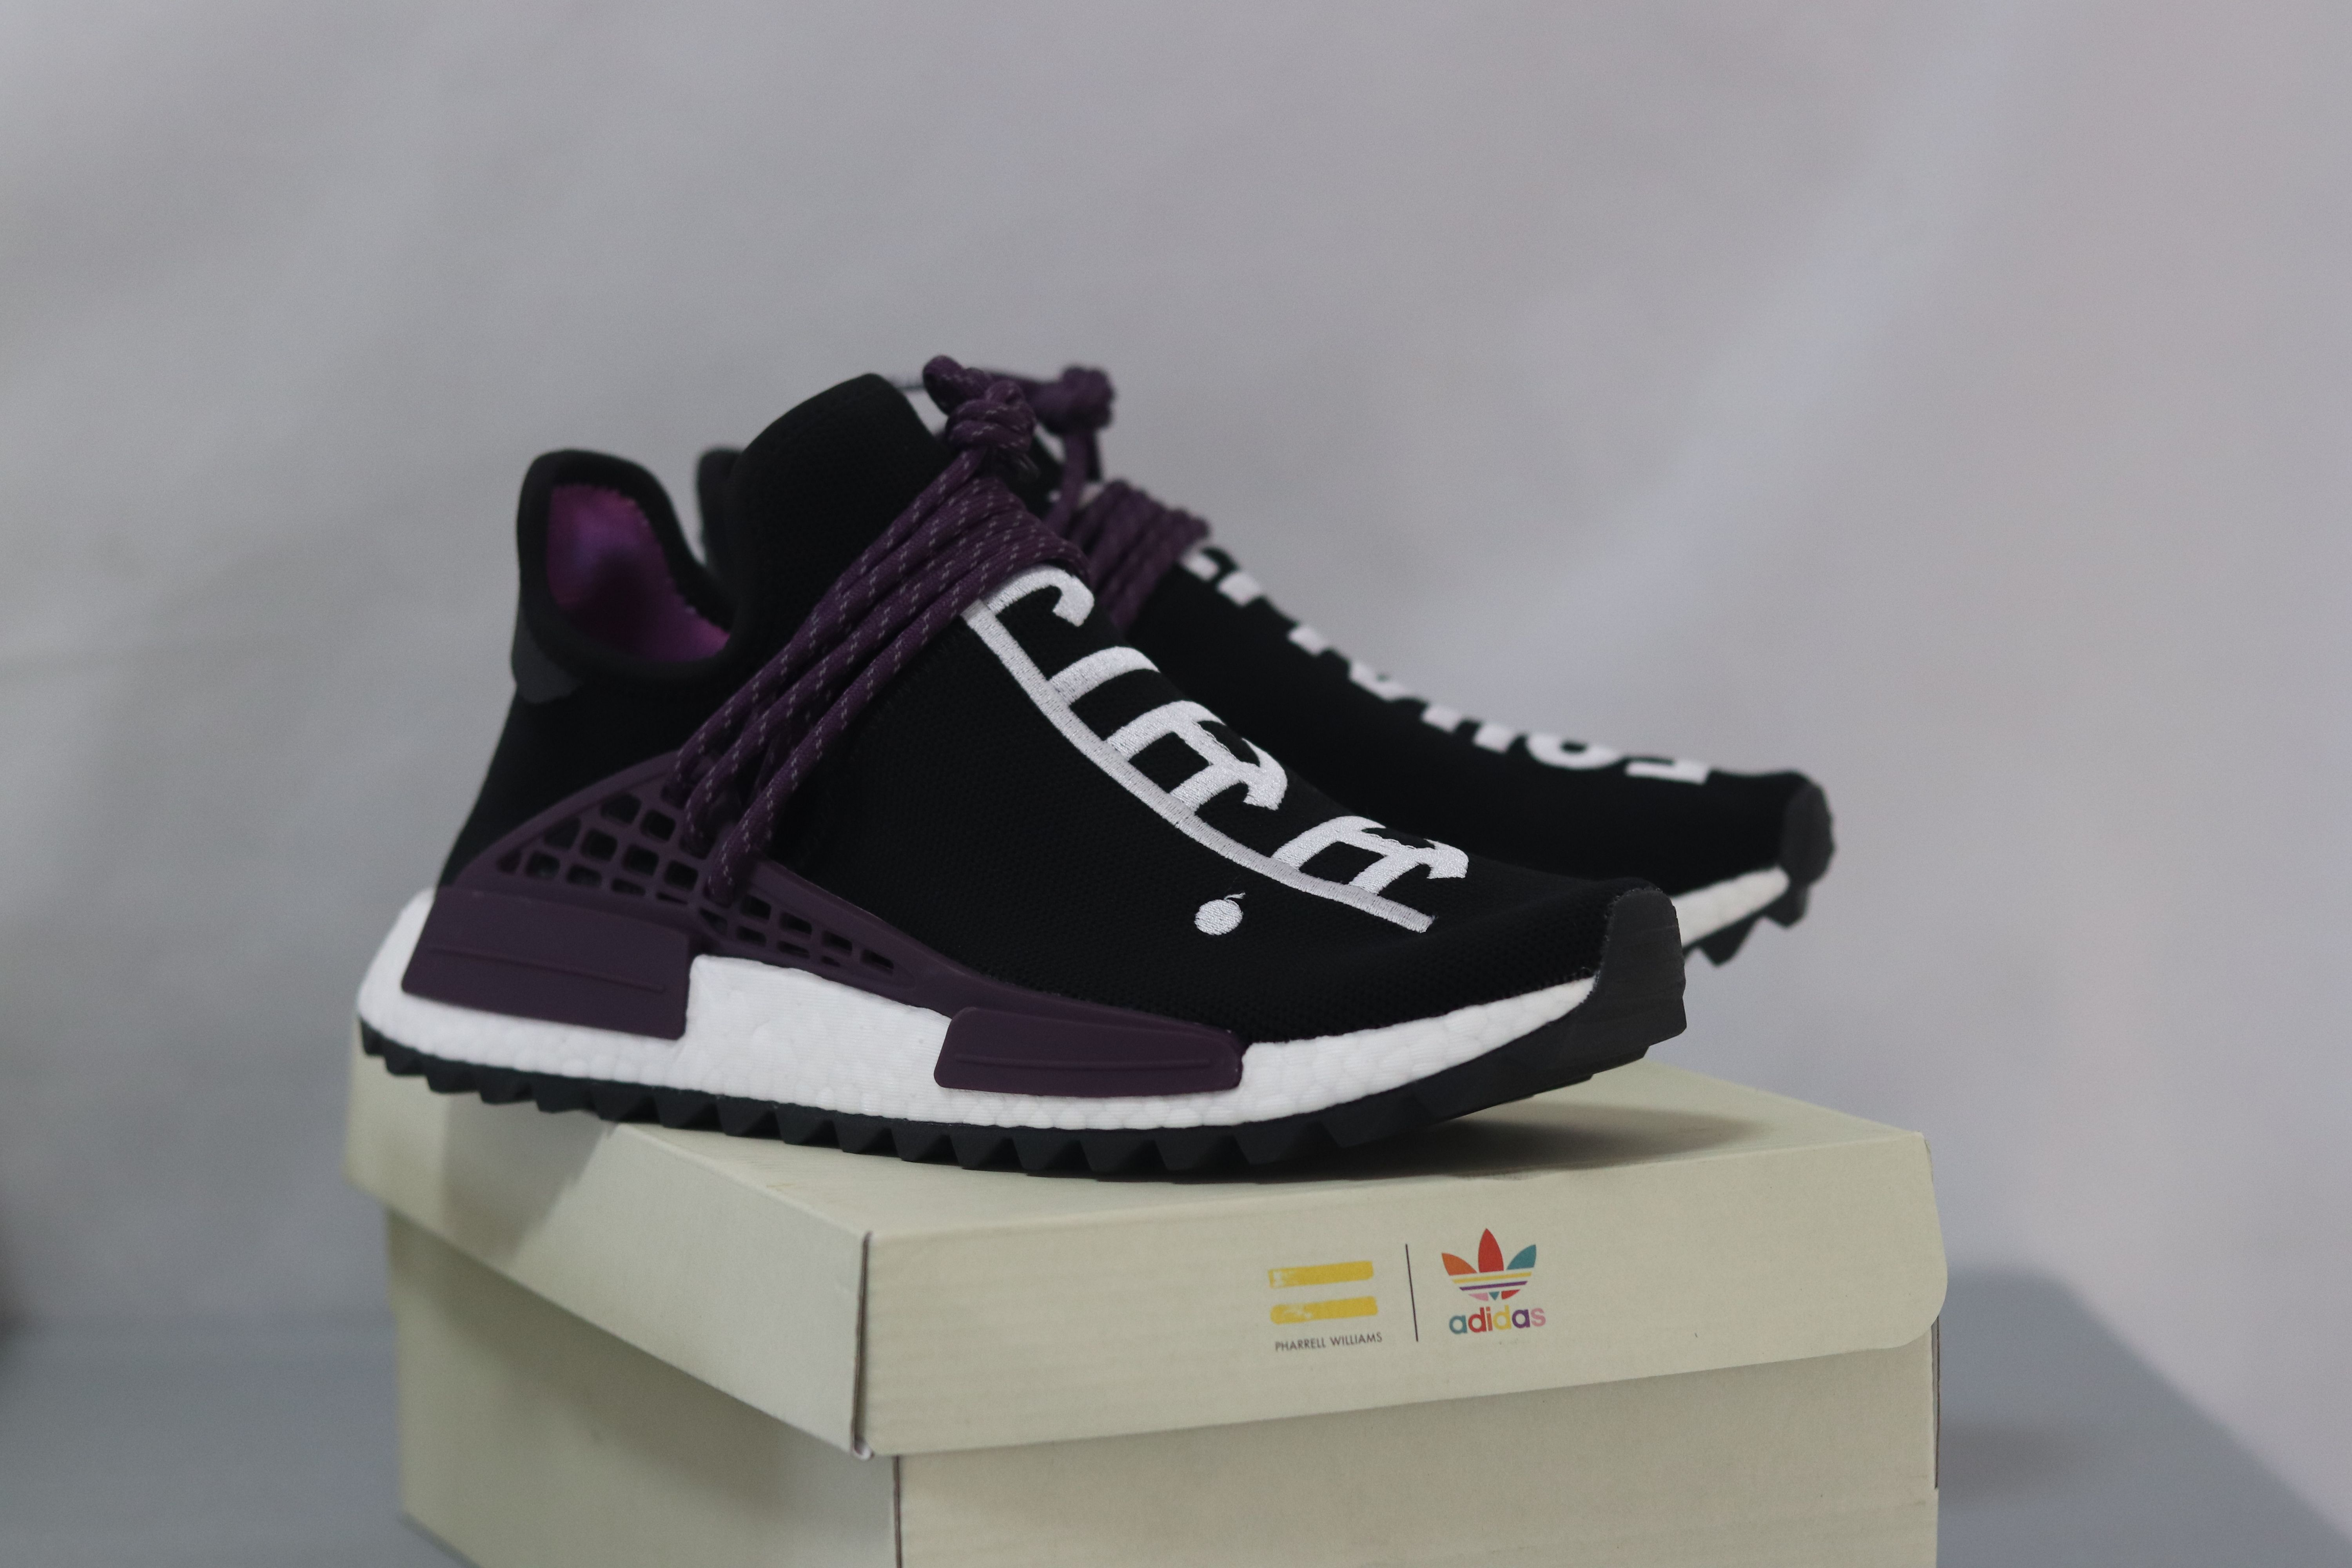 8c157f6b36715 Adidas human race shoes if you want to order